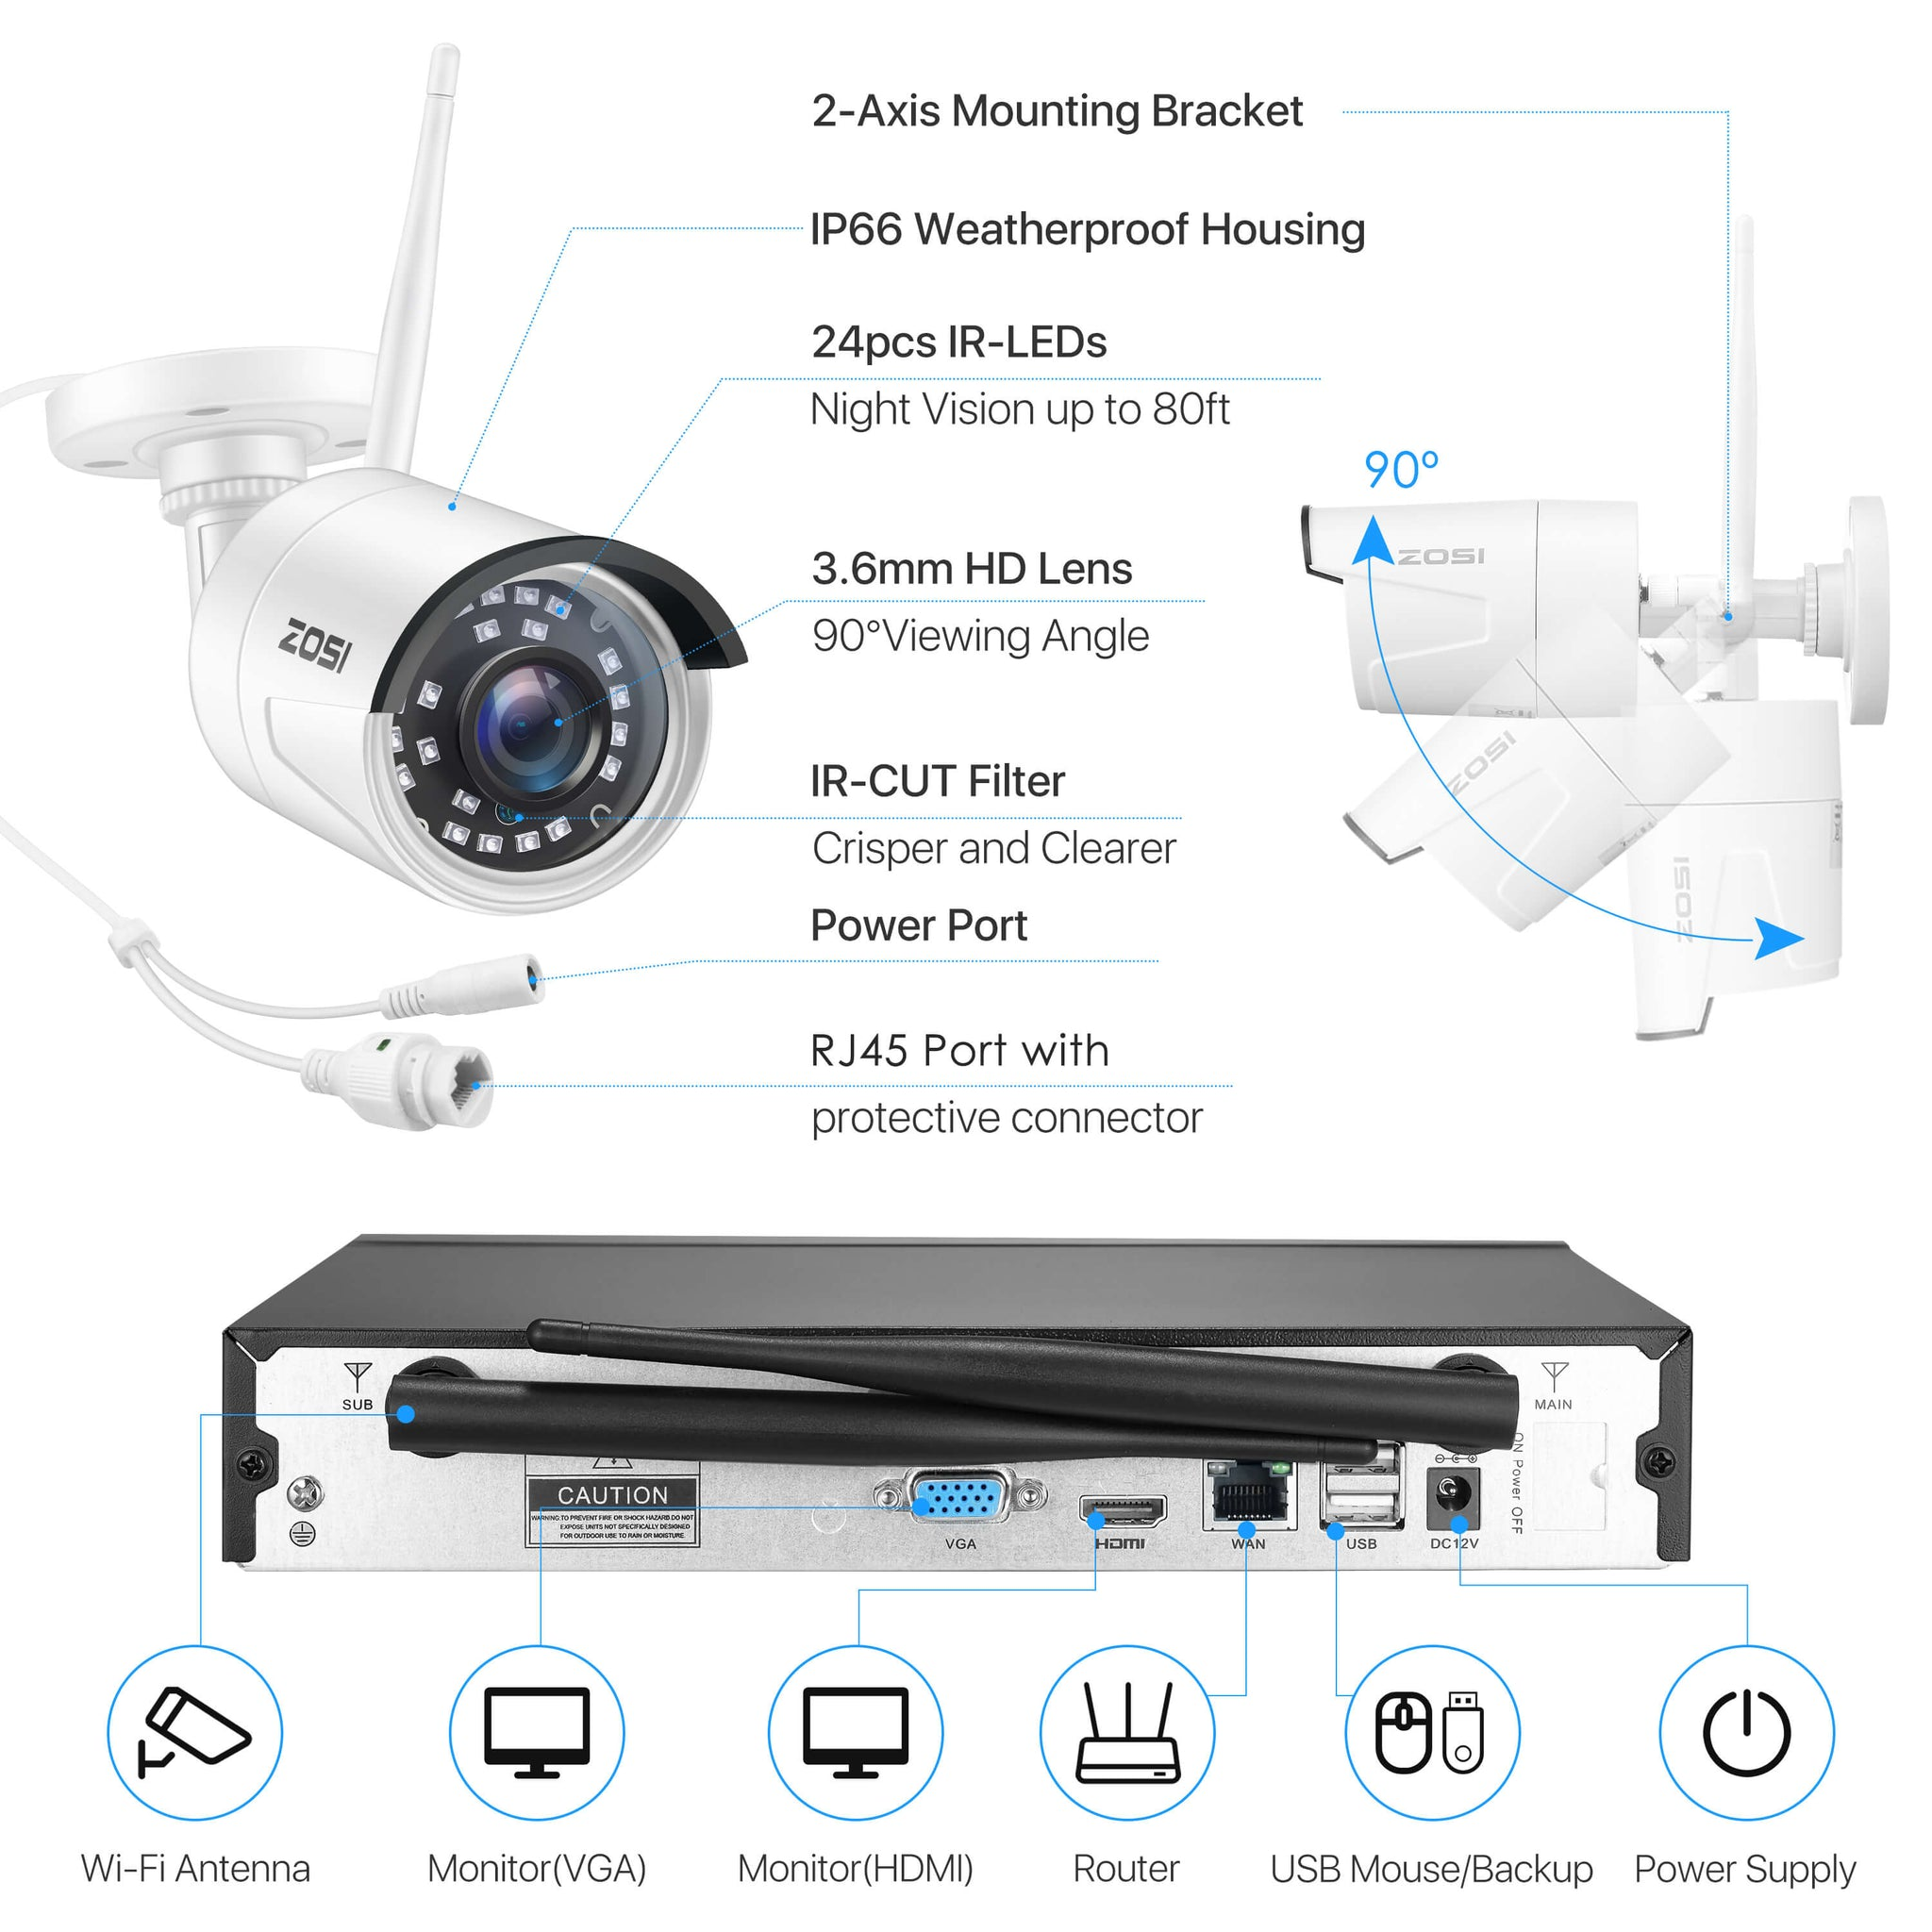 Wireless Security Camera System, H.265+ 8 Channel NVR, 1080P WiFi IP Camera, Indoor Outdoor Surveillance